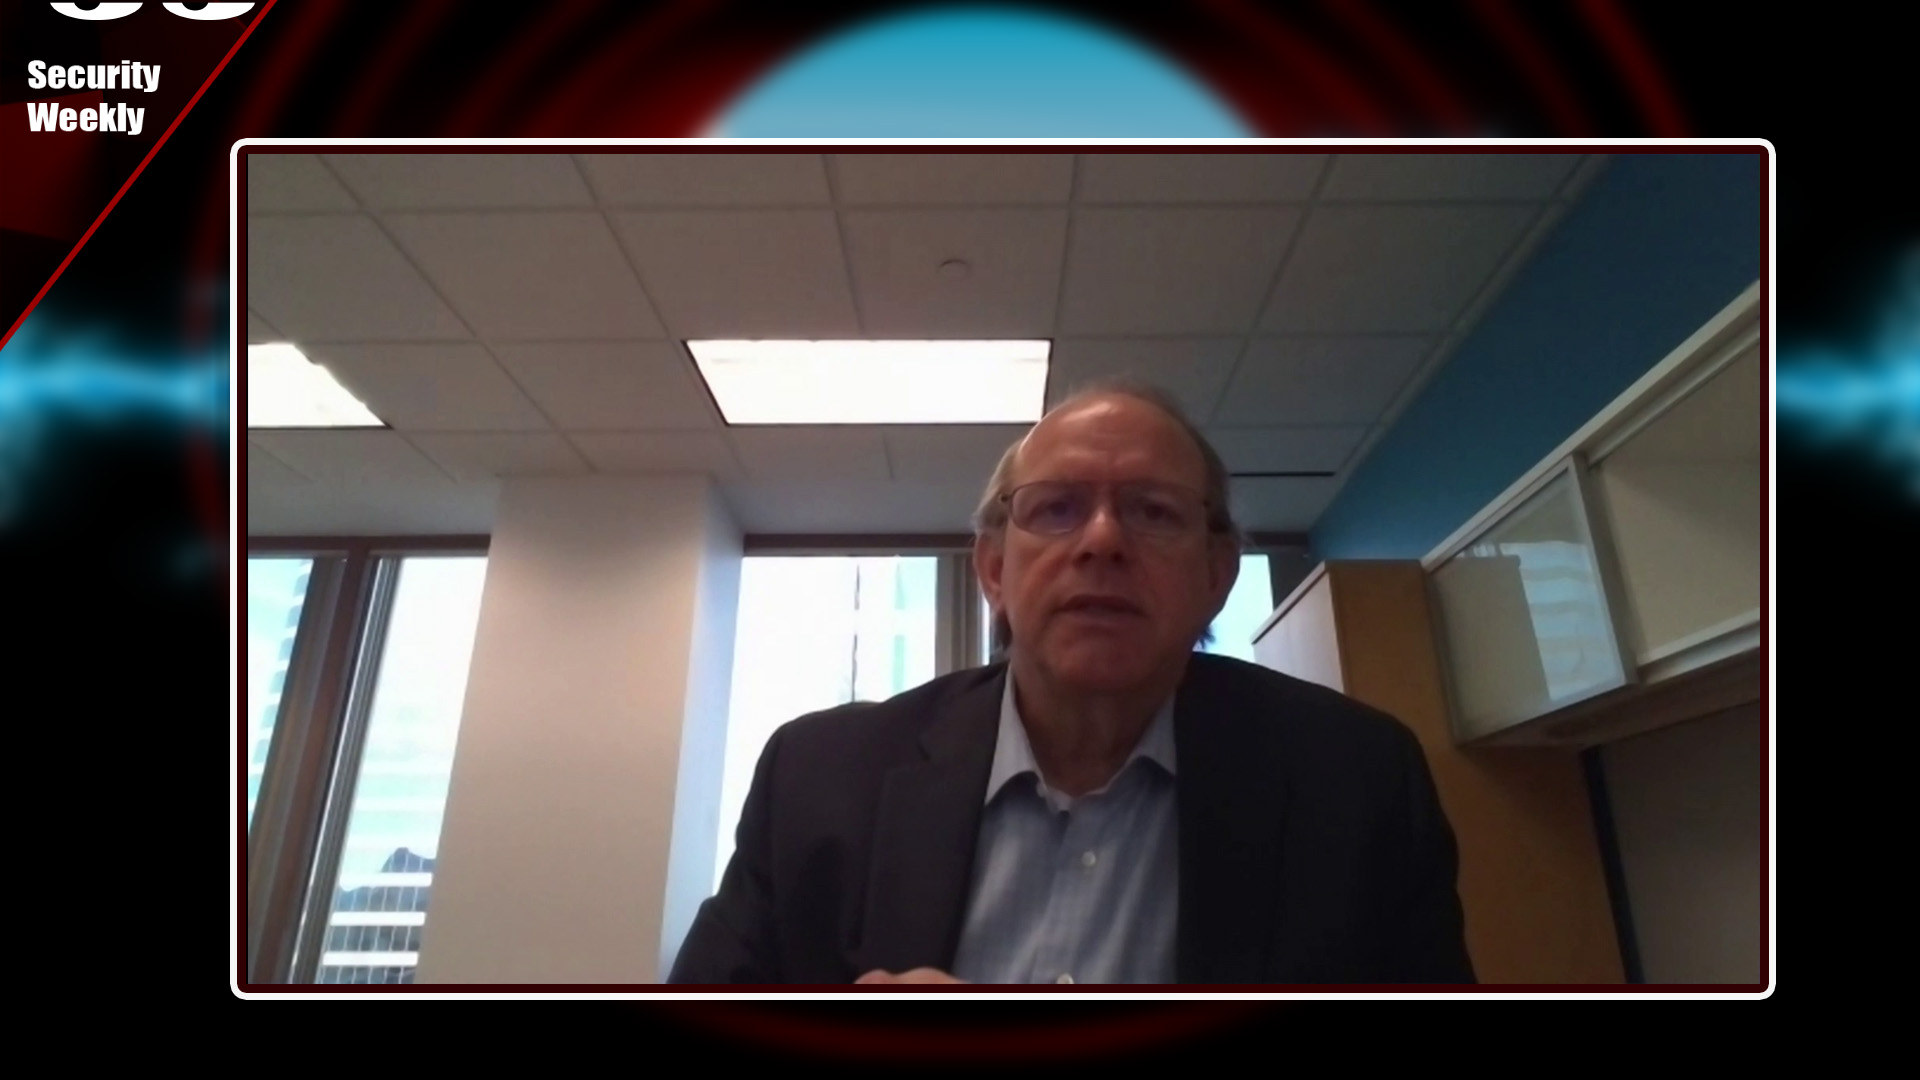 Artwork for Tim Callahan, Aflac - Business Security Weekly #112